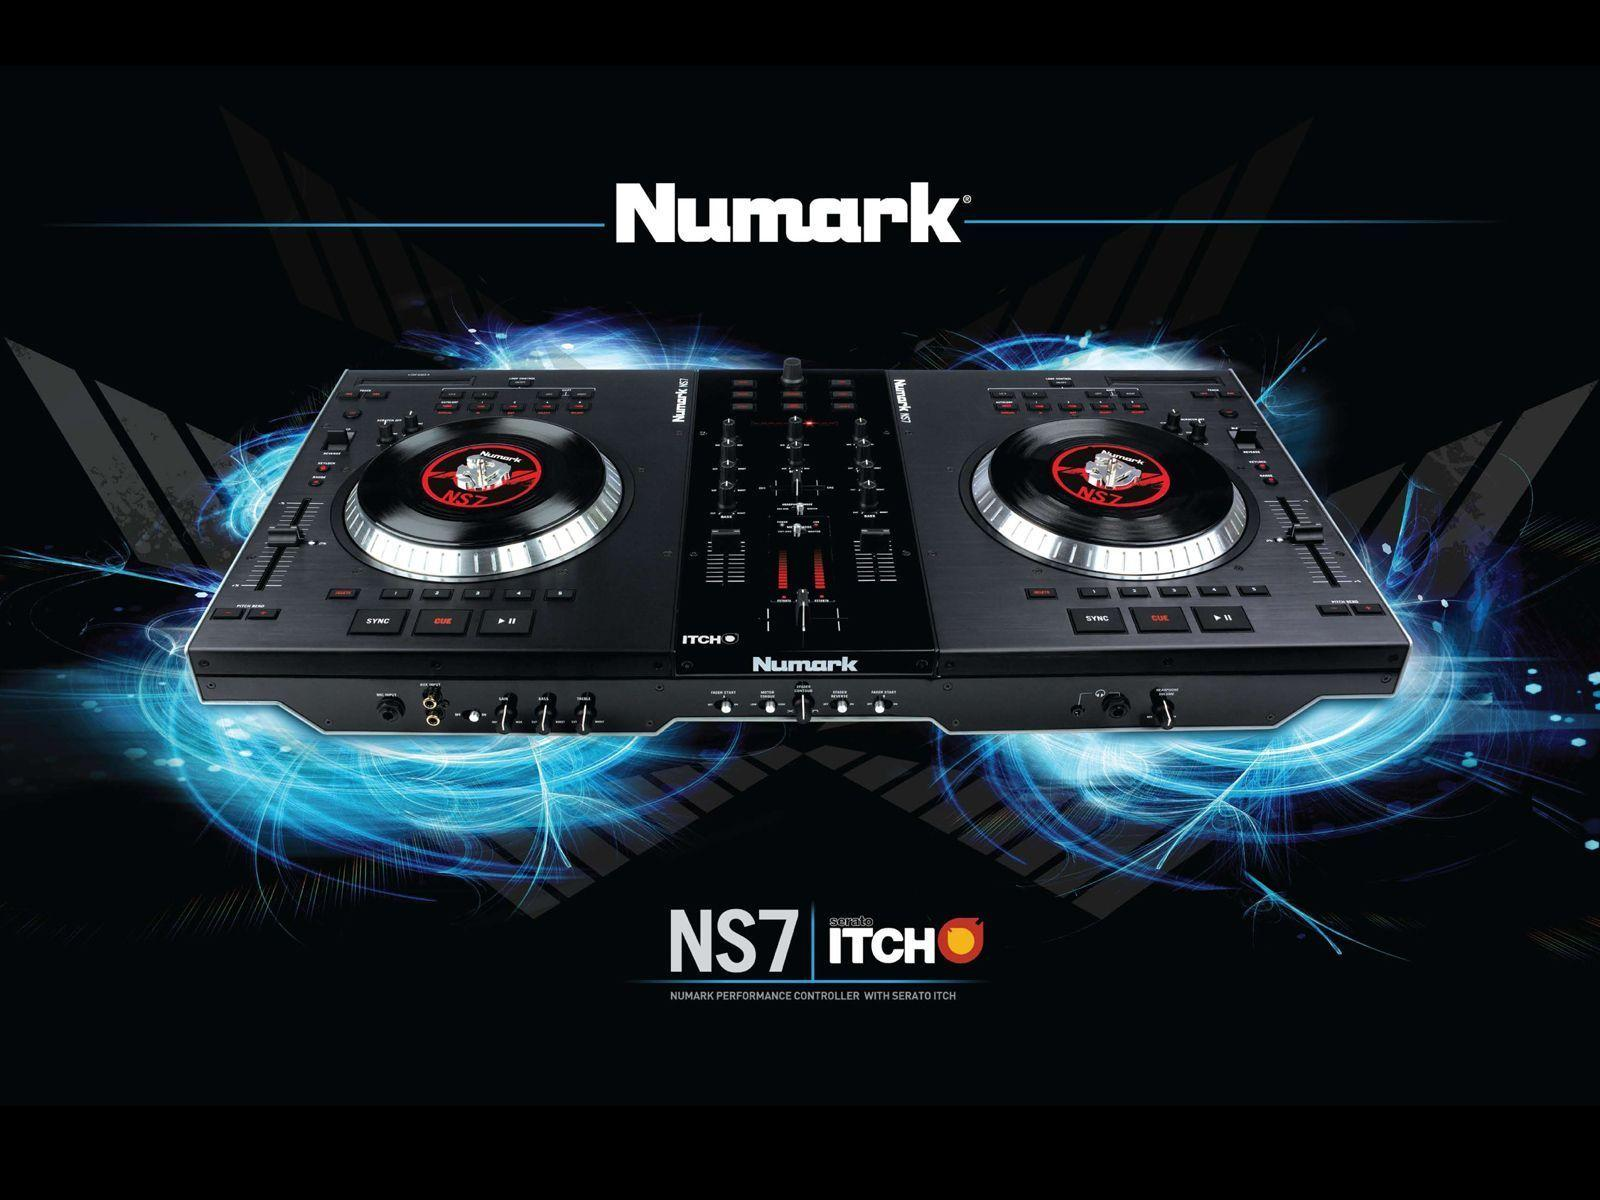 Wallpapers For > Dj Numark Mixer Wallpapers